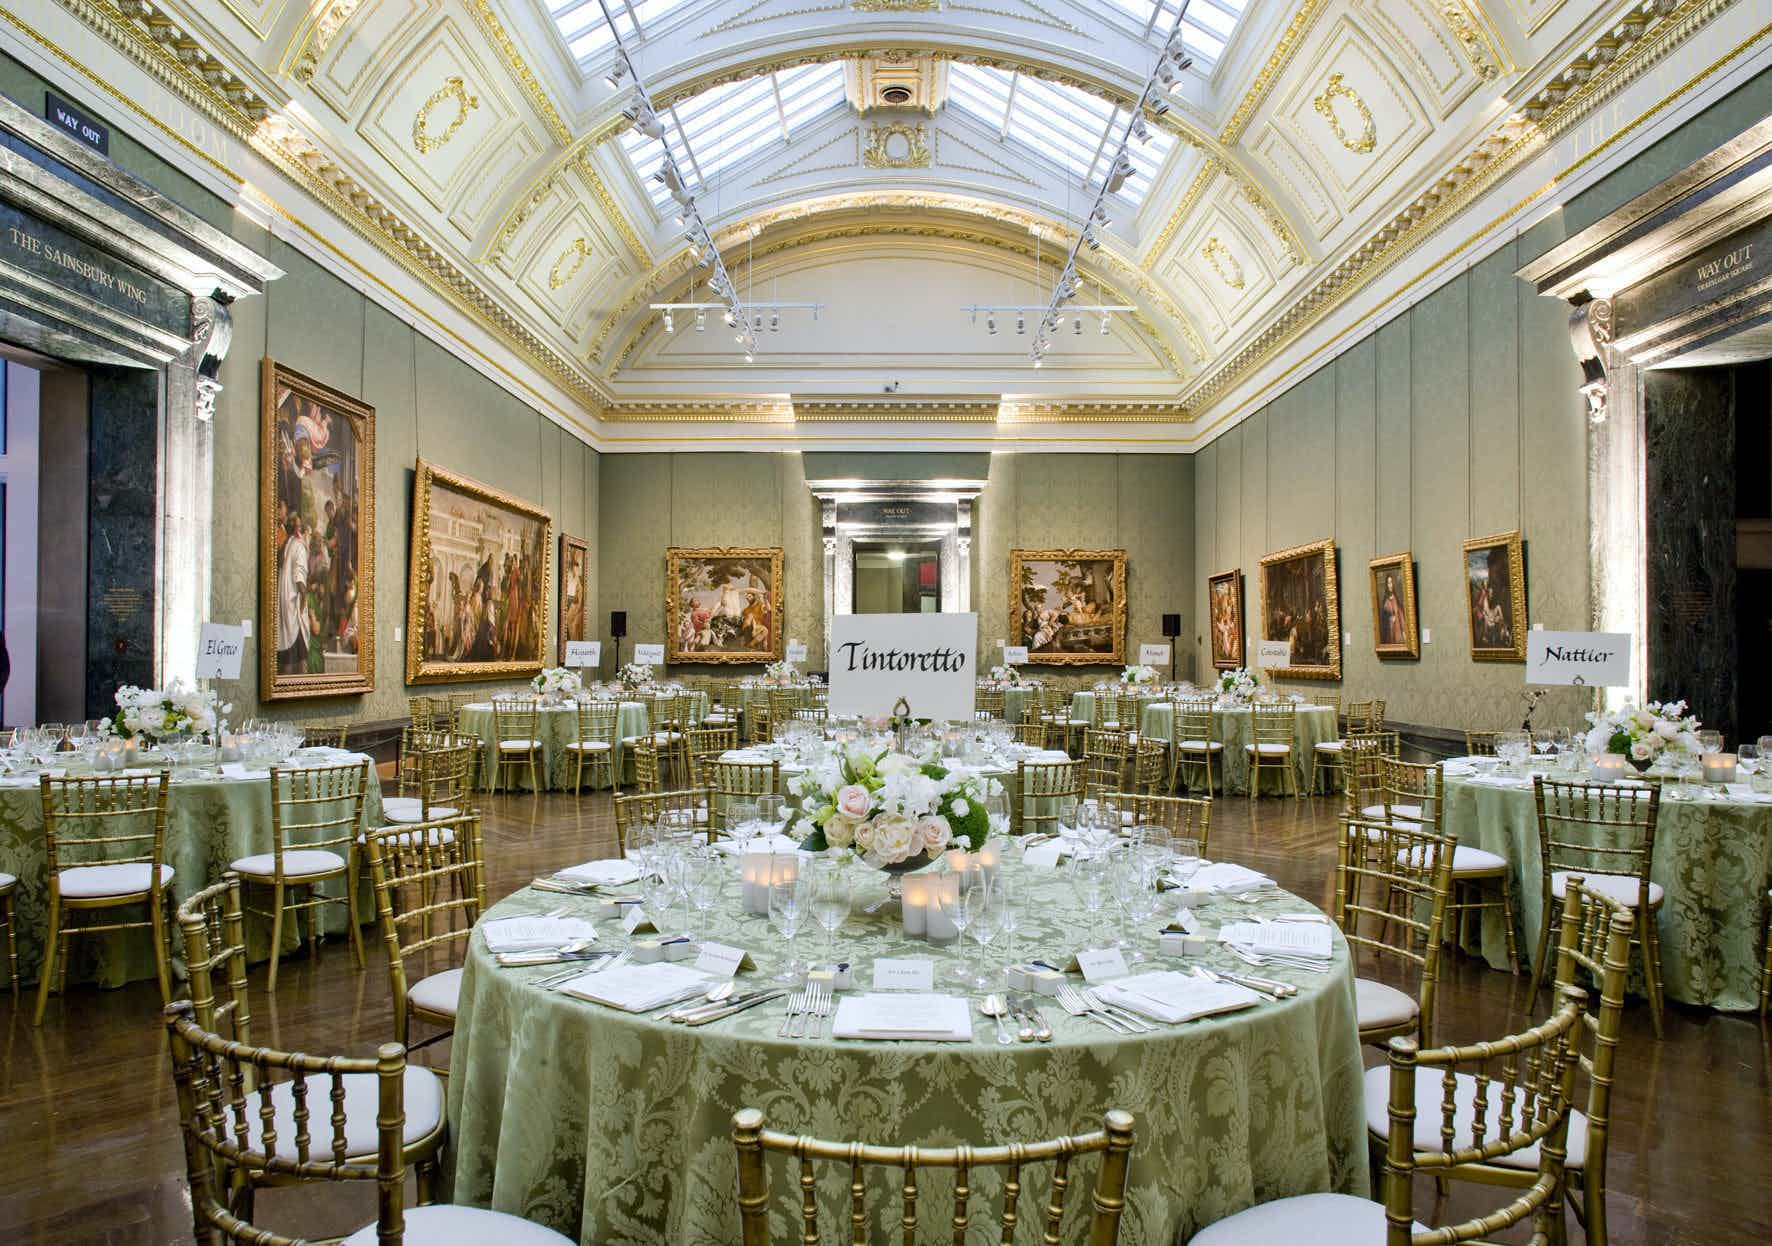 The Wohl Room, The National Gallery